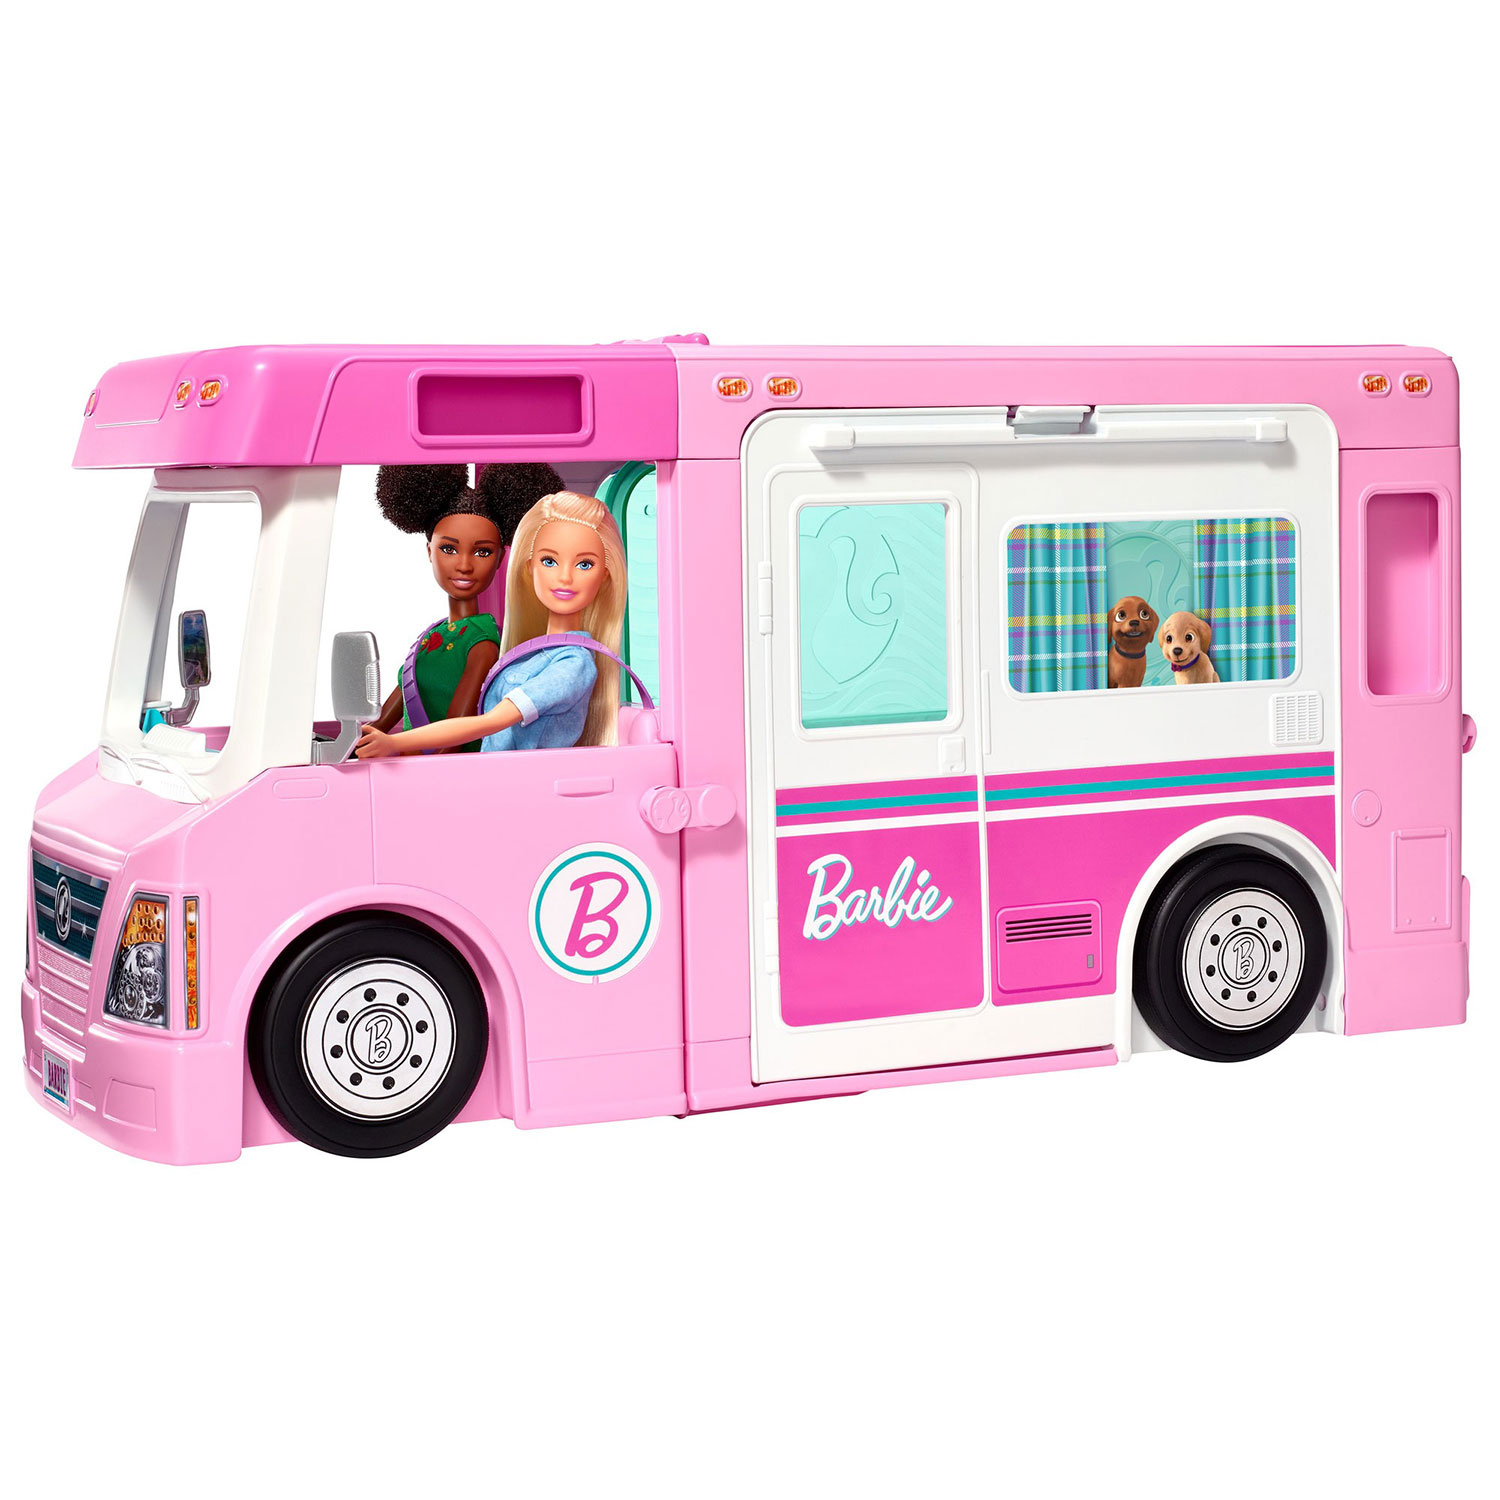 Barbie Estate 3-In-1 Dreamcamper Vehicle With Pool, Truck